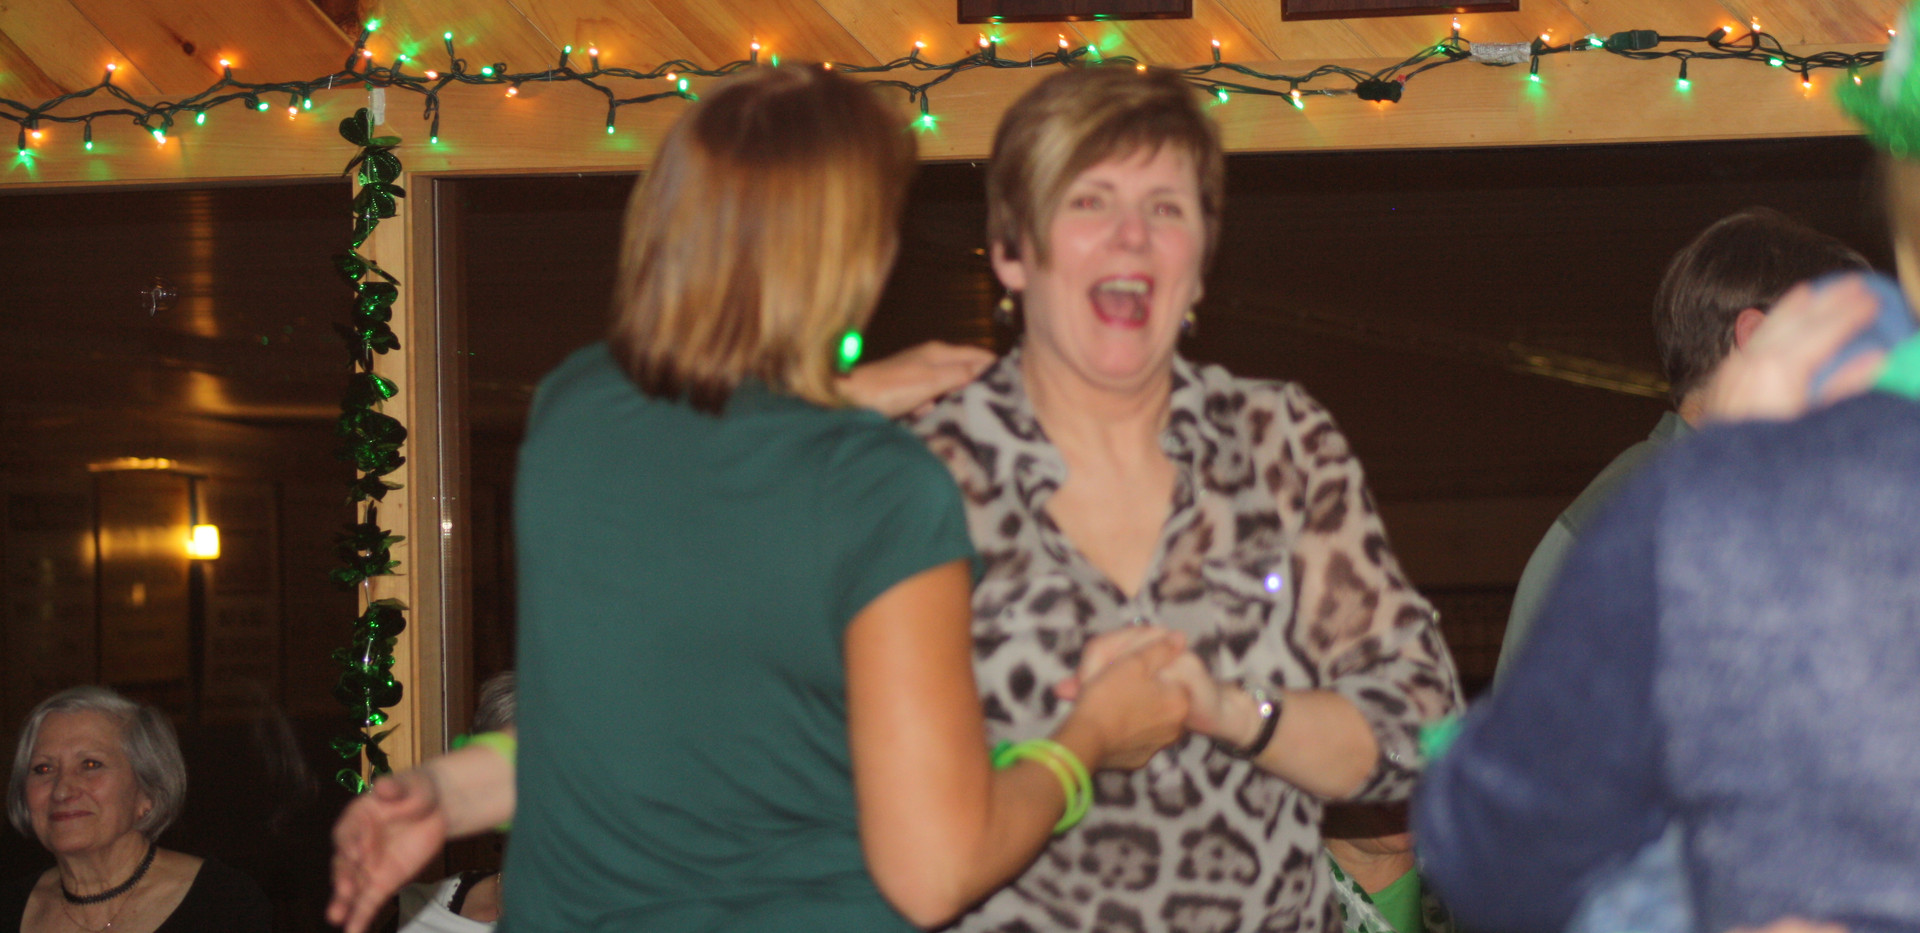 Dancing up a great time!